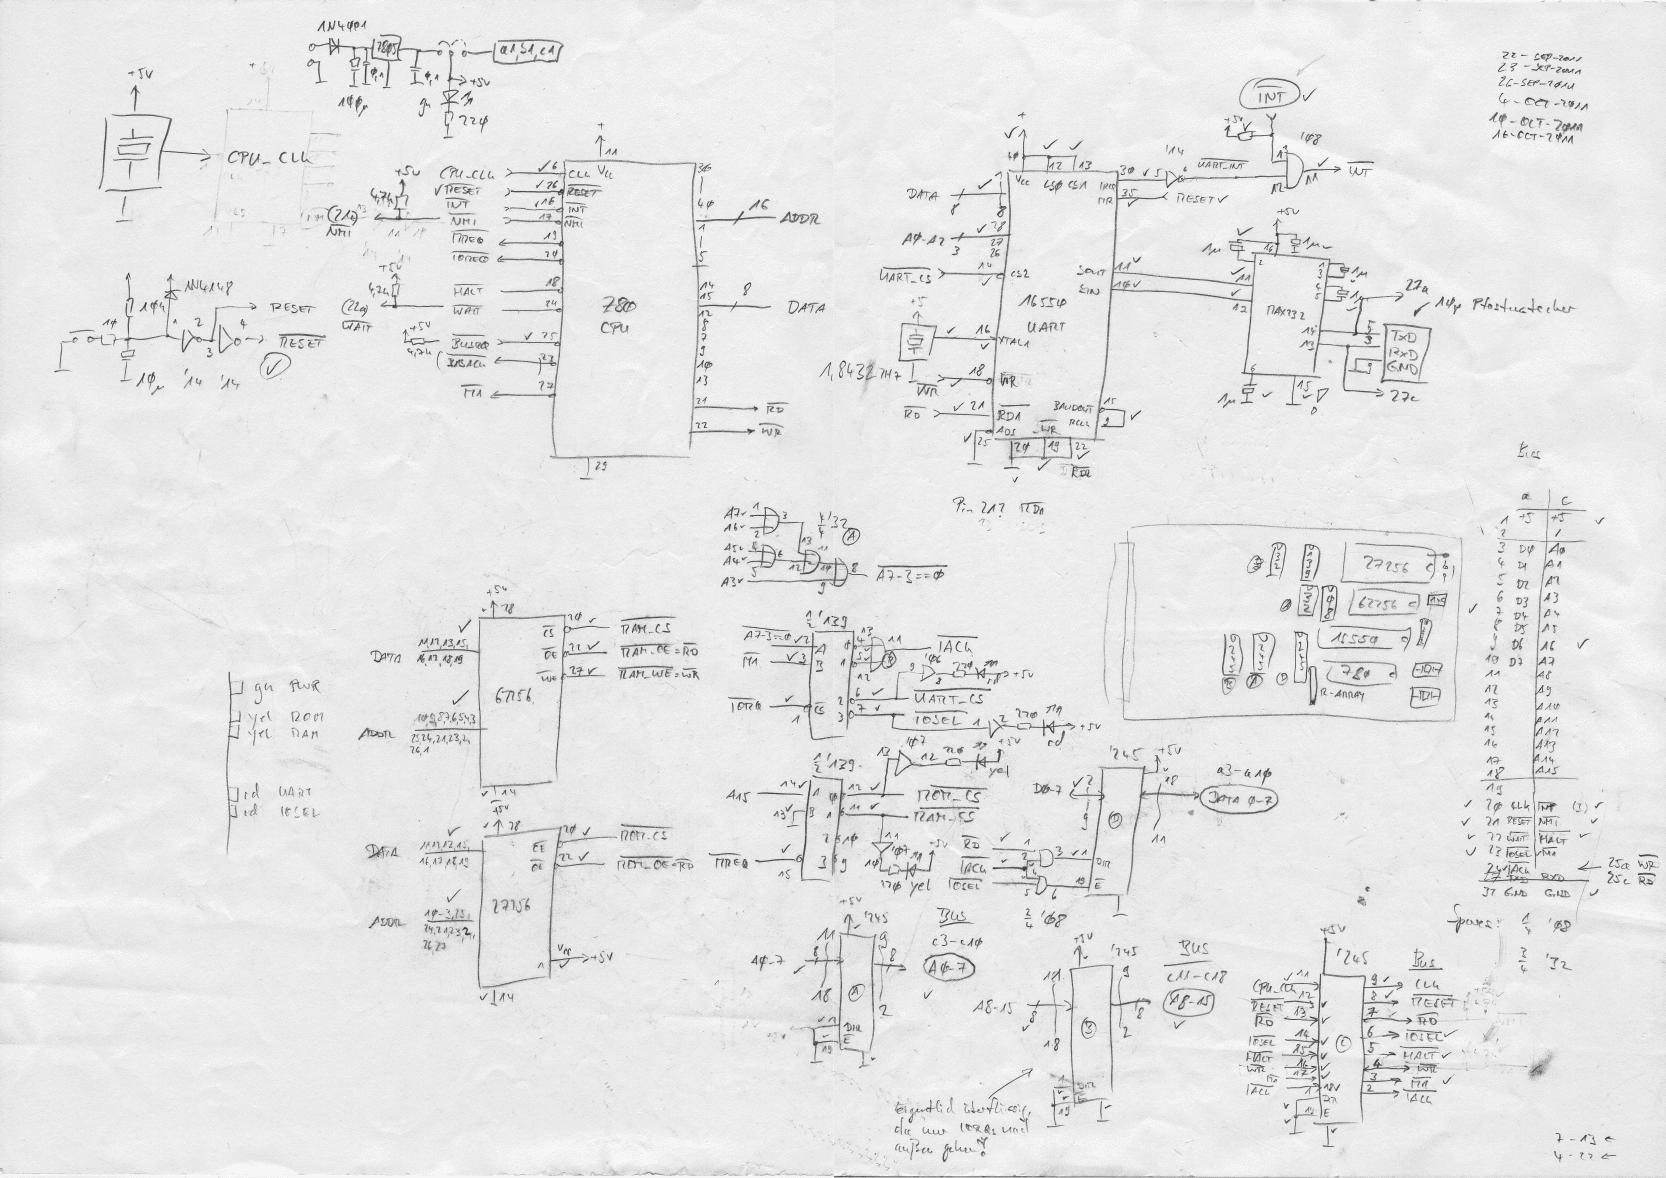 6502 Logic Diagram - Auto Electrical Wiring Diagram